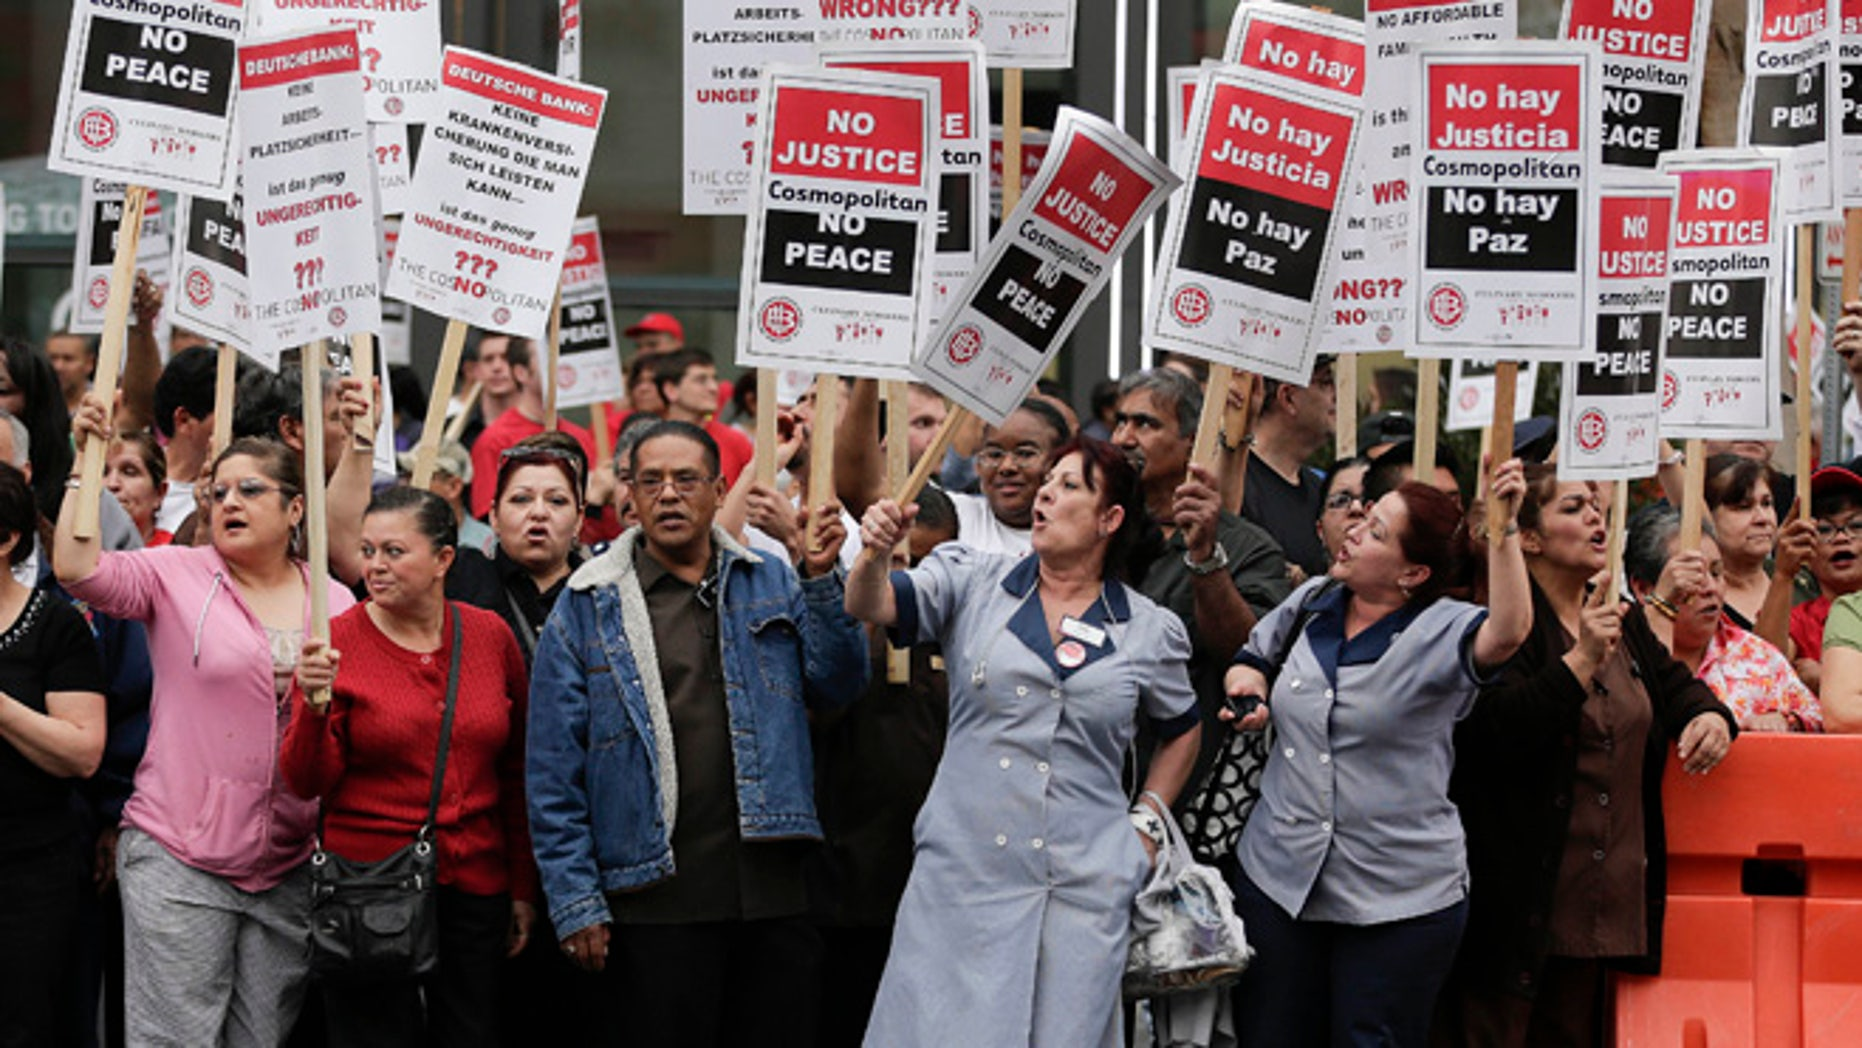 March 20, 2013: Culinary Union workers demonstrate along Las Vegas Boulevard, protesting against their contract negotiations with Deutsche Bank in Las Vegas.